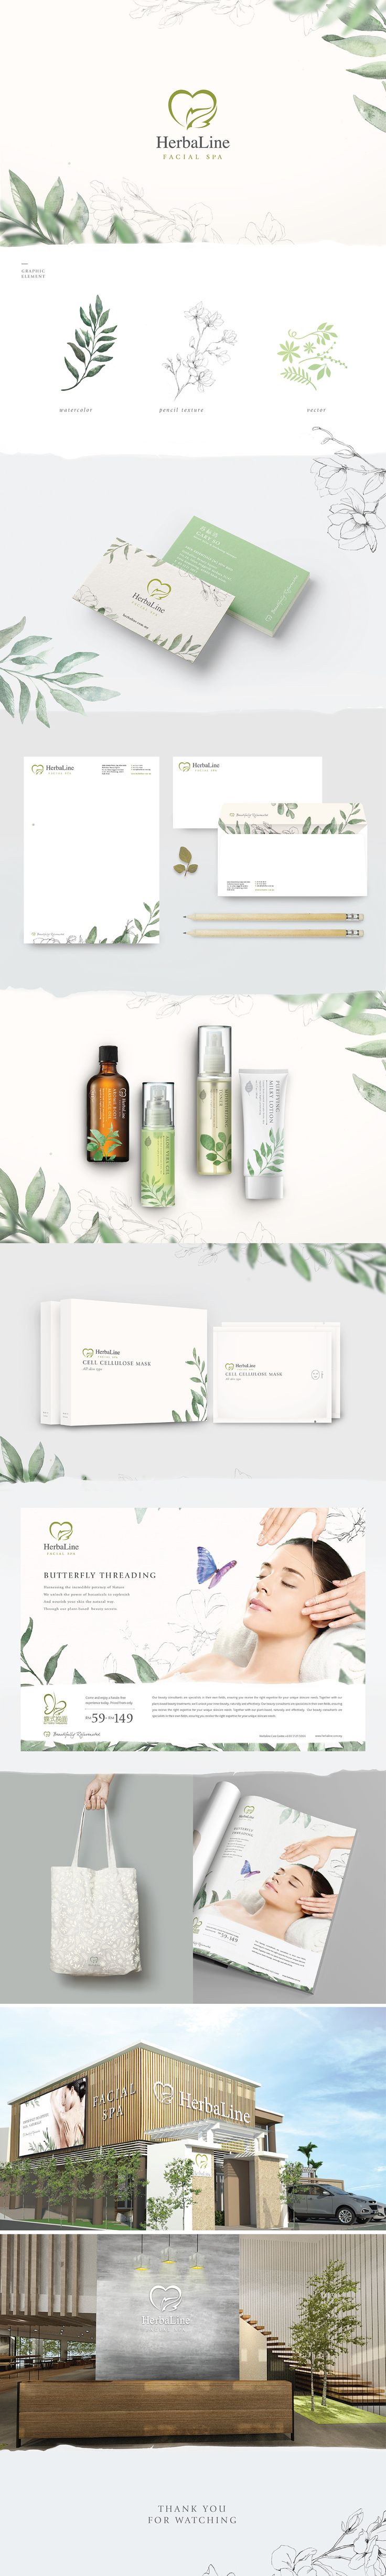 HerbaLine Facial Spa — Provides beauty spa treatments, which does not impose customers with the burden or commitment of a treatment package. Our team has created a full set of branding elements, packaging design, advertising and environment graphics.